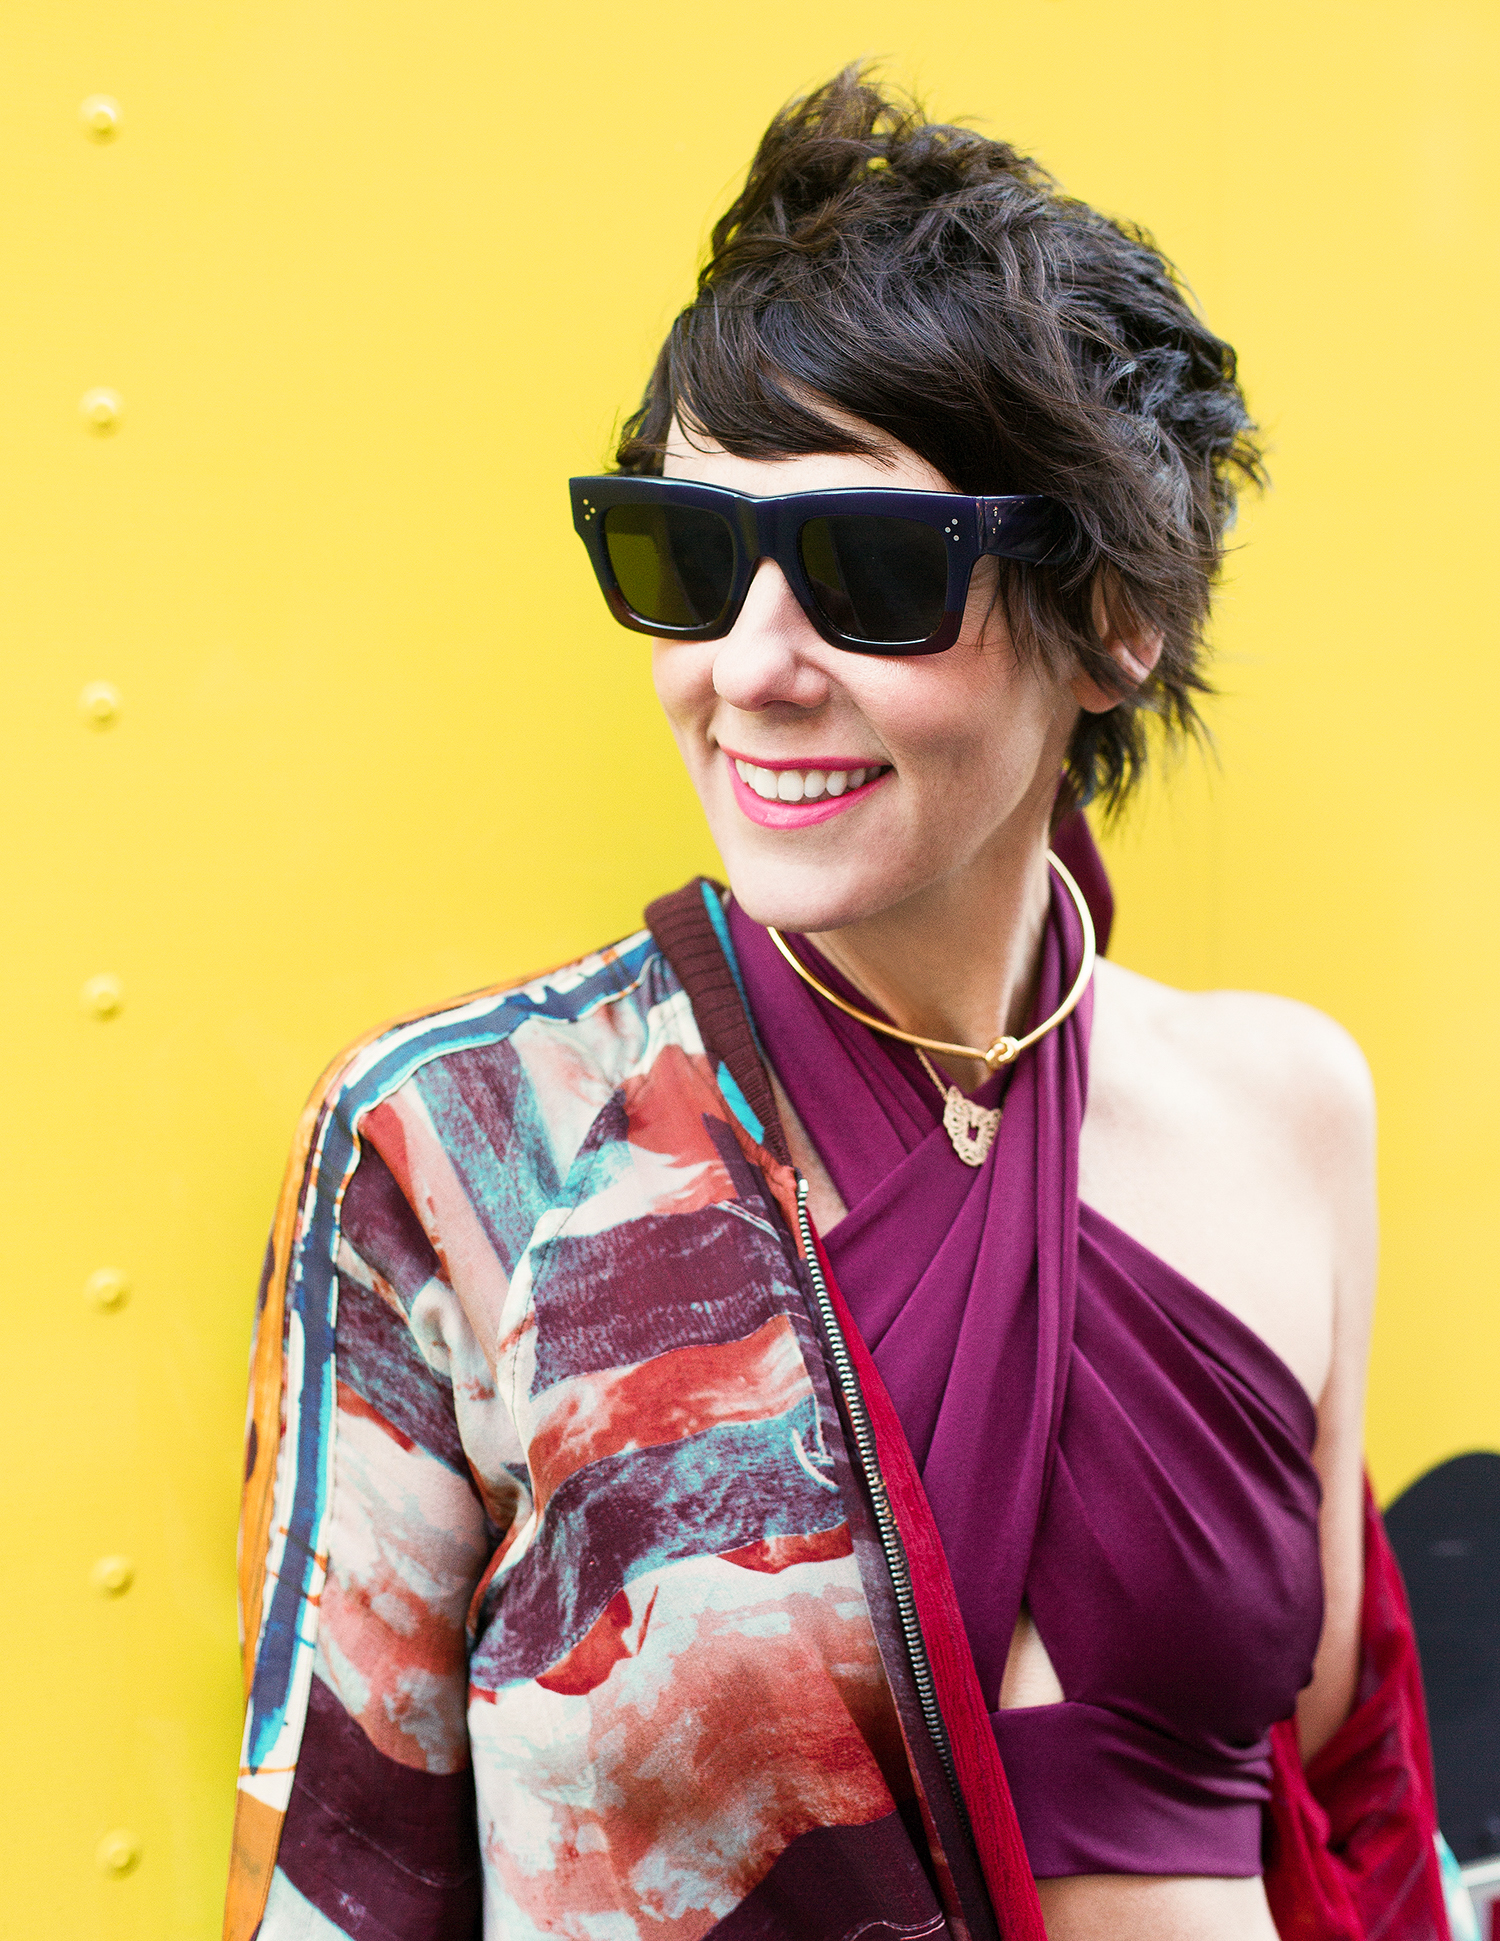 Sarah Easley and the Transformation of the Downtown Lifestyle